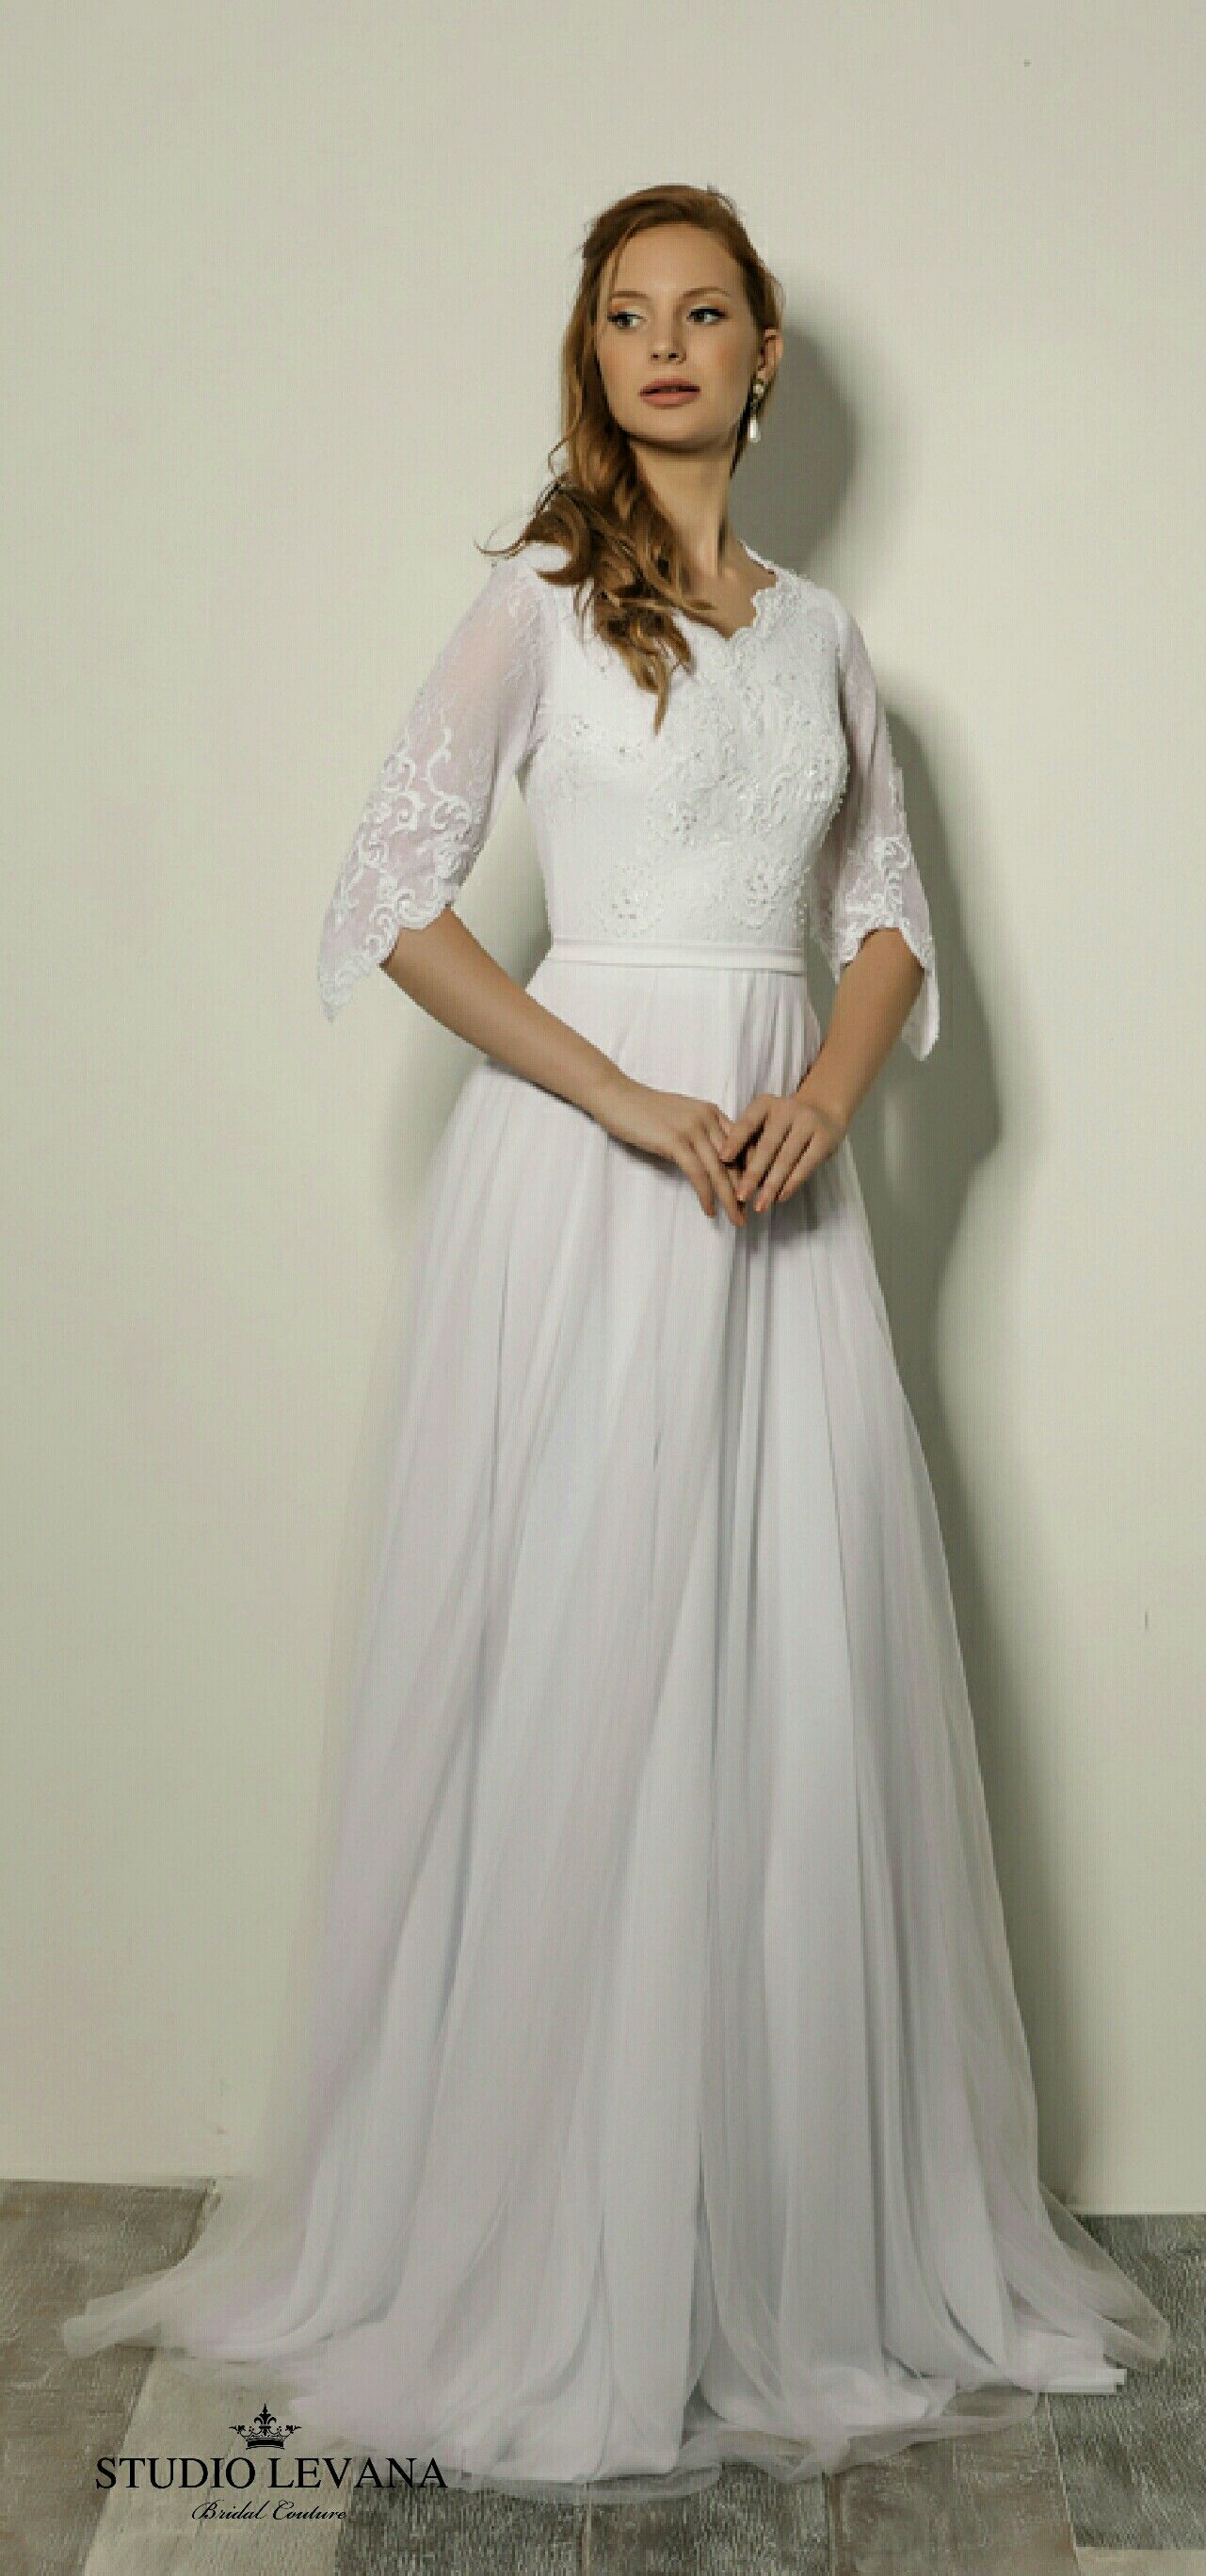 e540992689725 Modest wedding gown with beaded lace top and wide sleeves. Trish. Studio  Levana